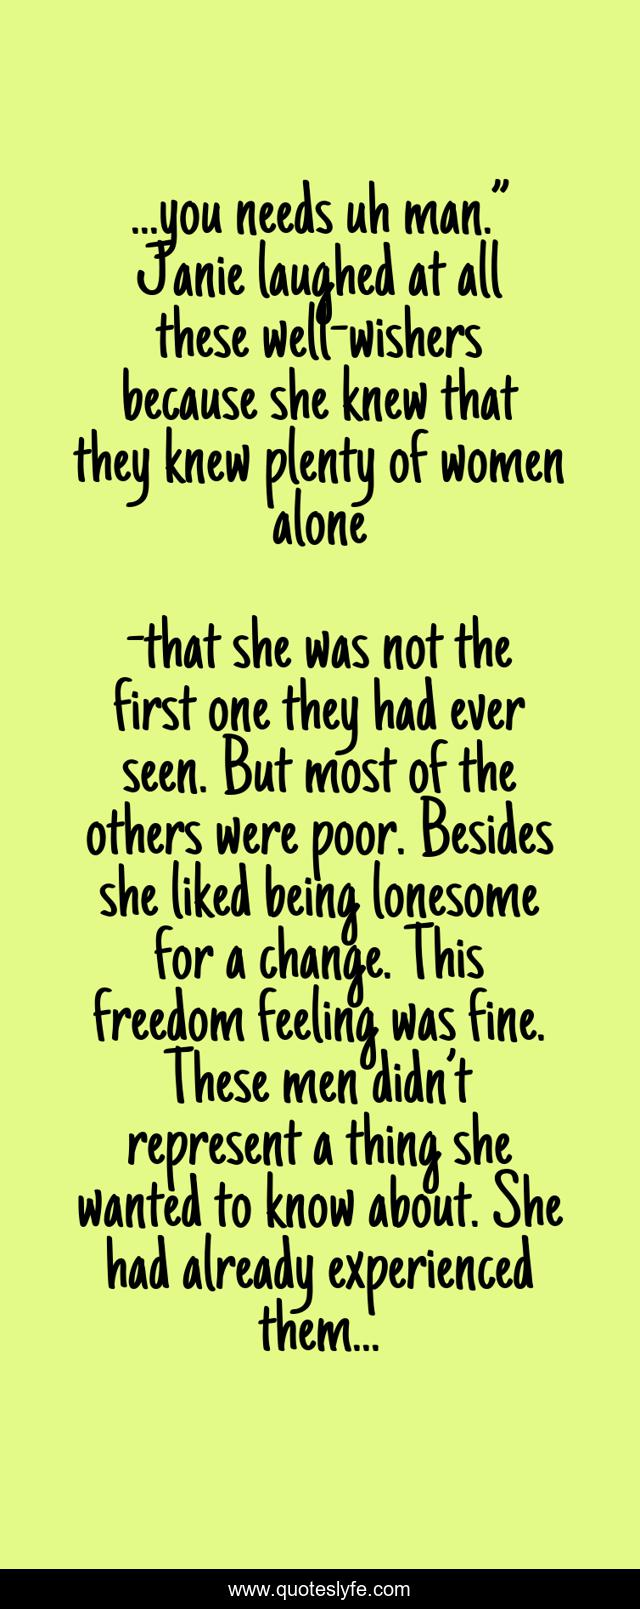 """...you needs uh man."""" Janie laughed at all these well-wishers because she knew that they knew plenty of women alone"""